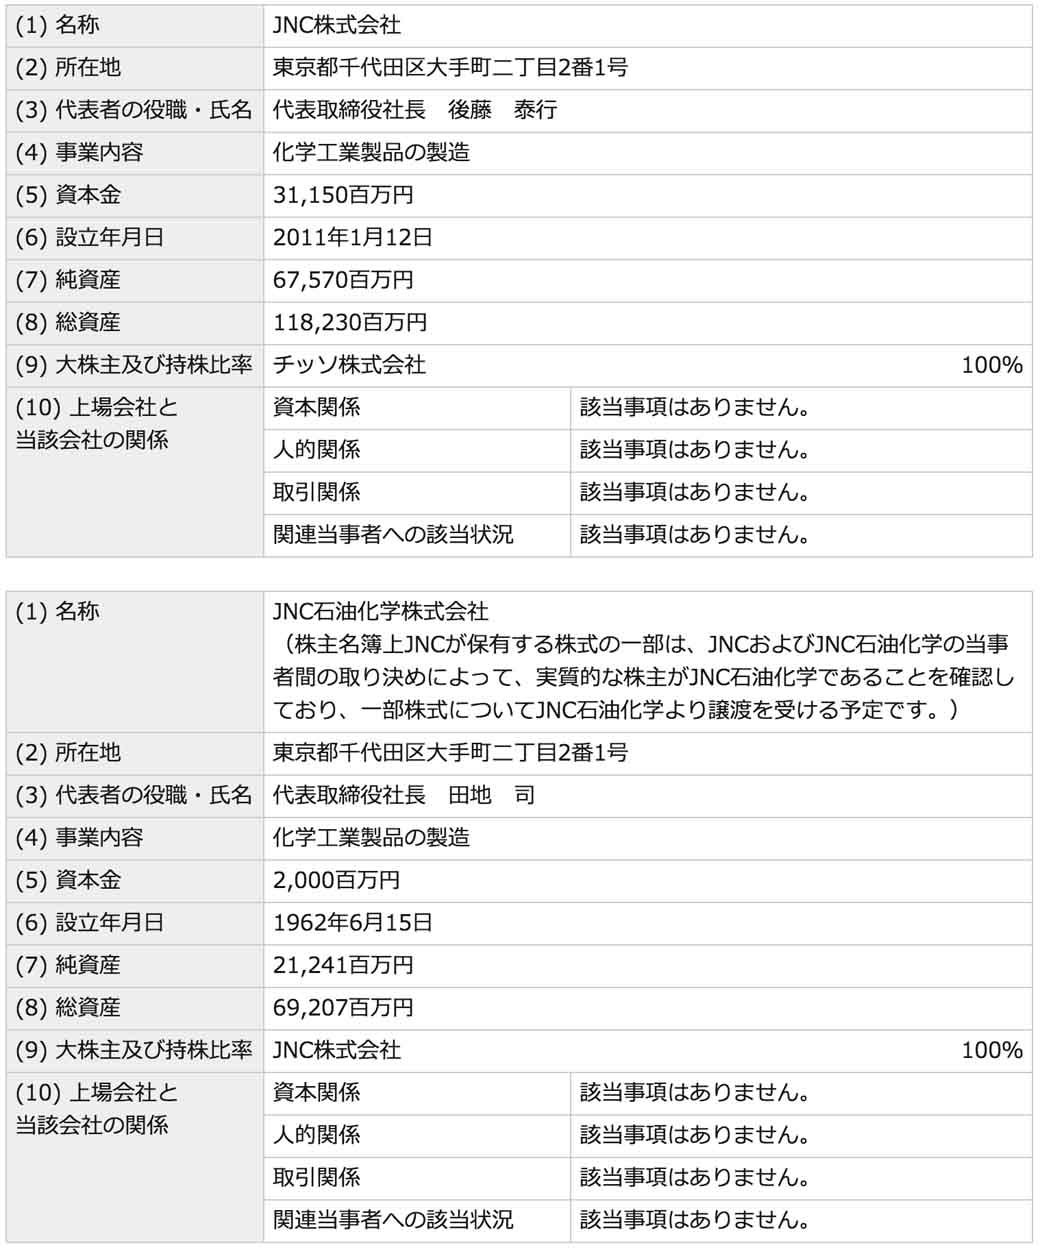 cosmo-energy-holdings-the-acquisition-of-shares-by-maruzen-petrochemical-the-subsidiary-implementation20160313-2